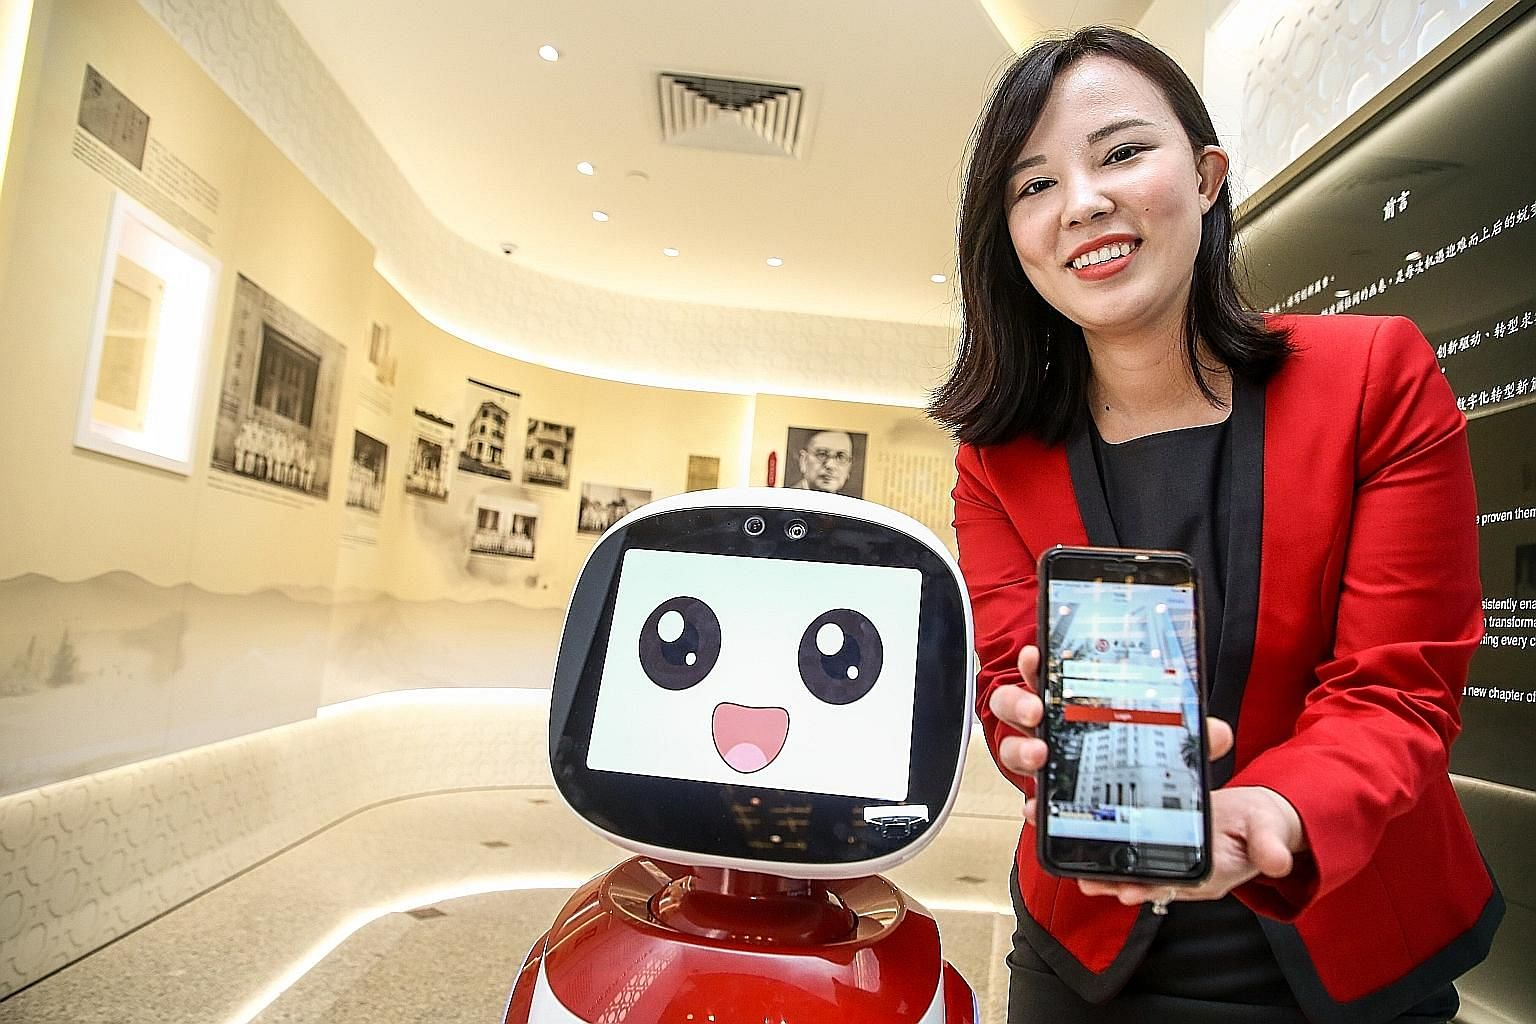 Bank of China's newly opened global fintech innovation lab in Singapore. Financial-market players of all stripes are increasingly using artificial intelligence (AI) and machine learning for applications ranging from customer interaction to regulatory